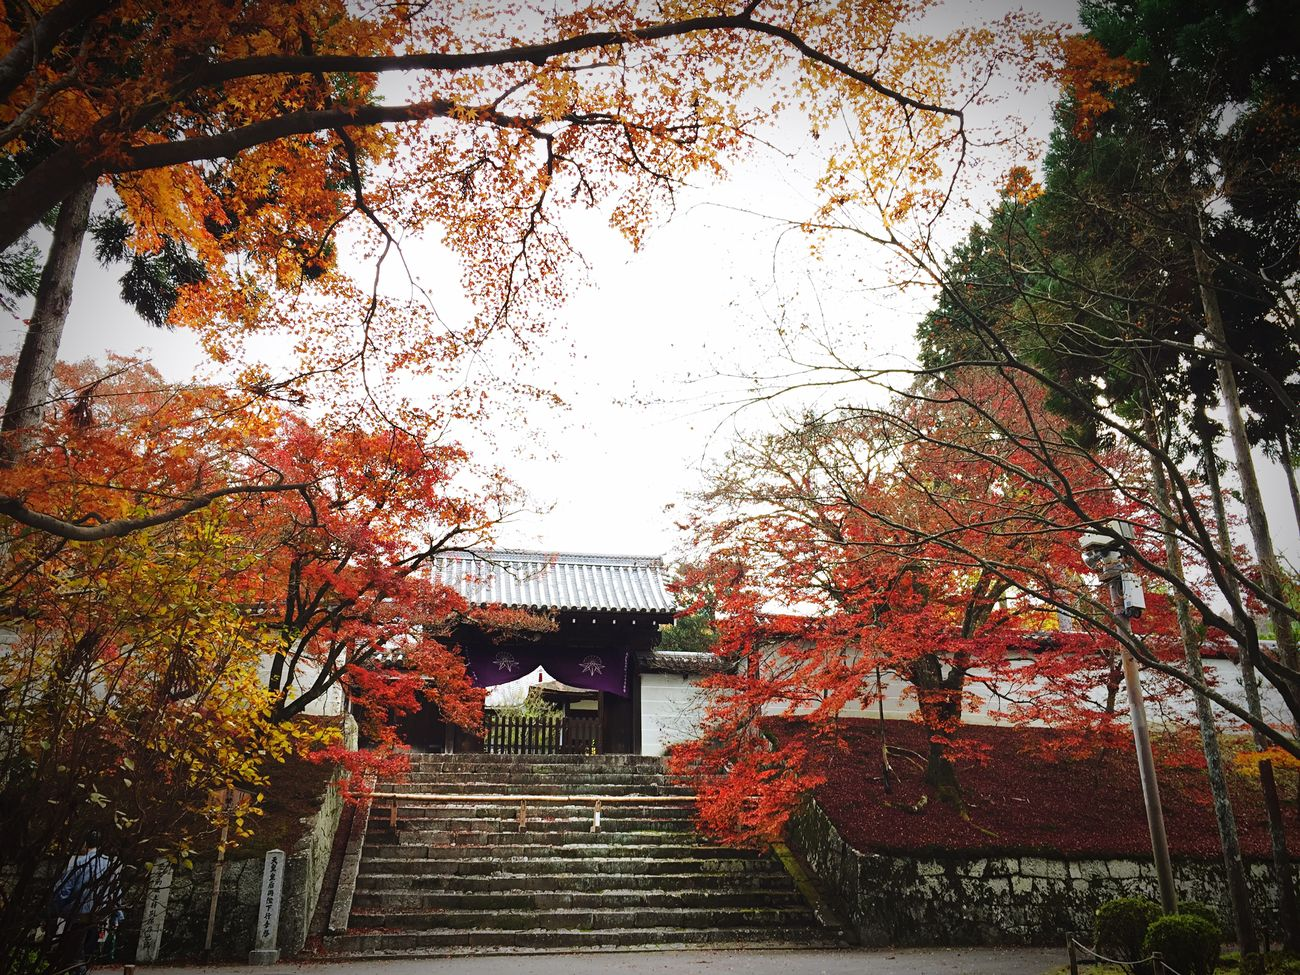 今年の曼殊院門跡🍁 Tree Architecture Built Structure Autumn Building Exterior Low Angle View Change Steps Place Of Worship Day Staircase Travel Destinations Outdoors No People Cultures Steps And Staircases Sky Nature 曼殊院門跡 Kyoto Red